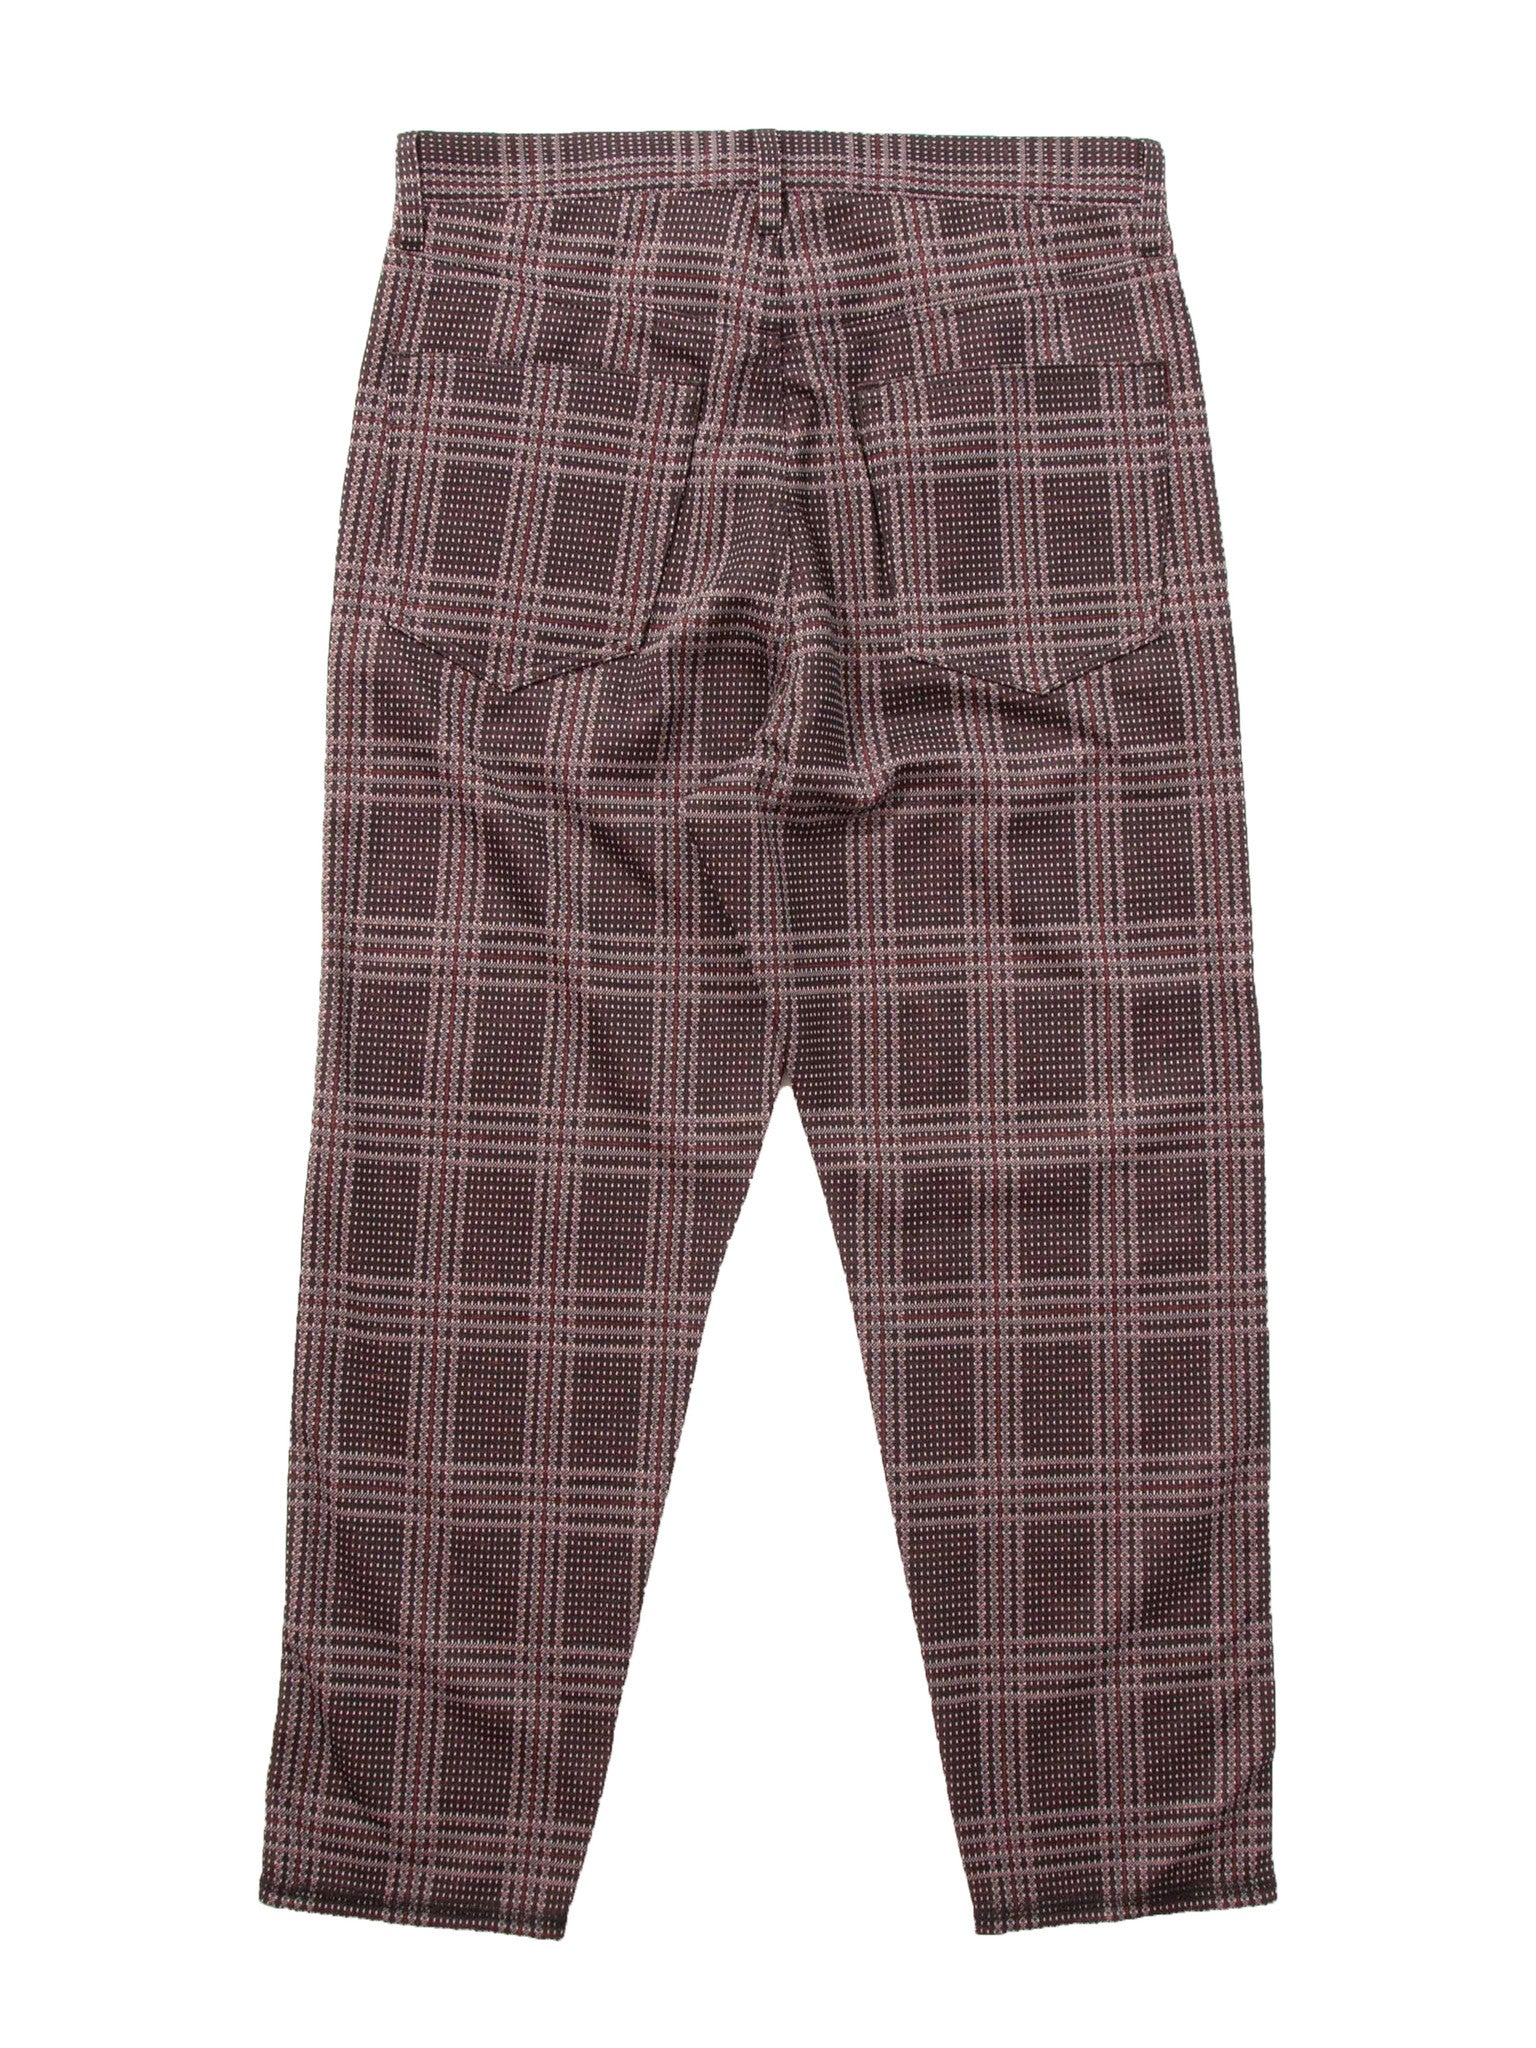 M 5 Pkt Patterned Trouser 5